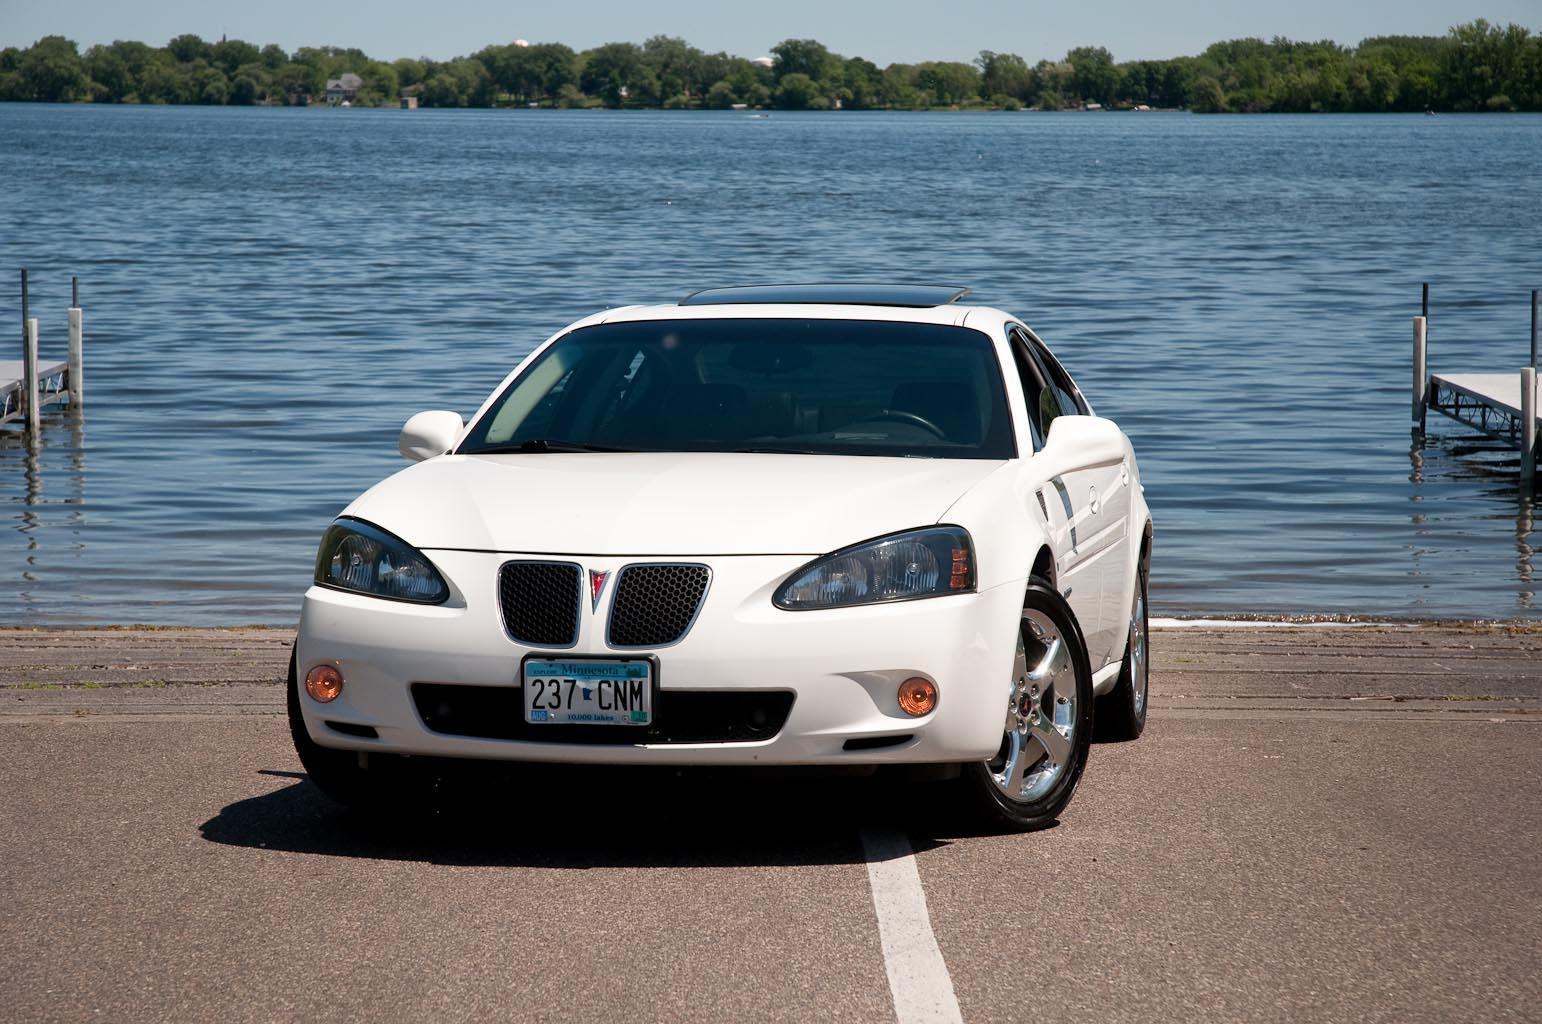 ryanhockey002 2006 Pontiac Grand Prix